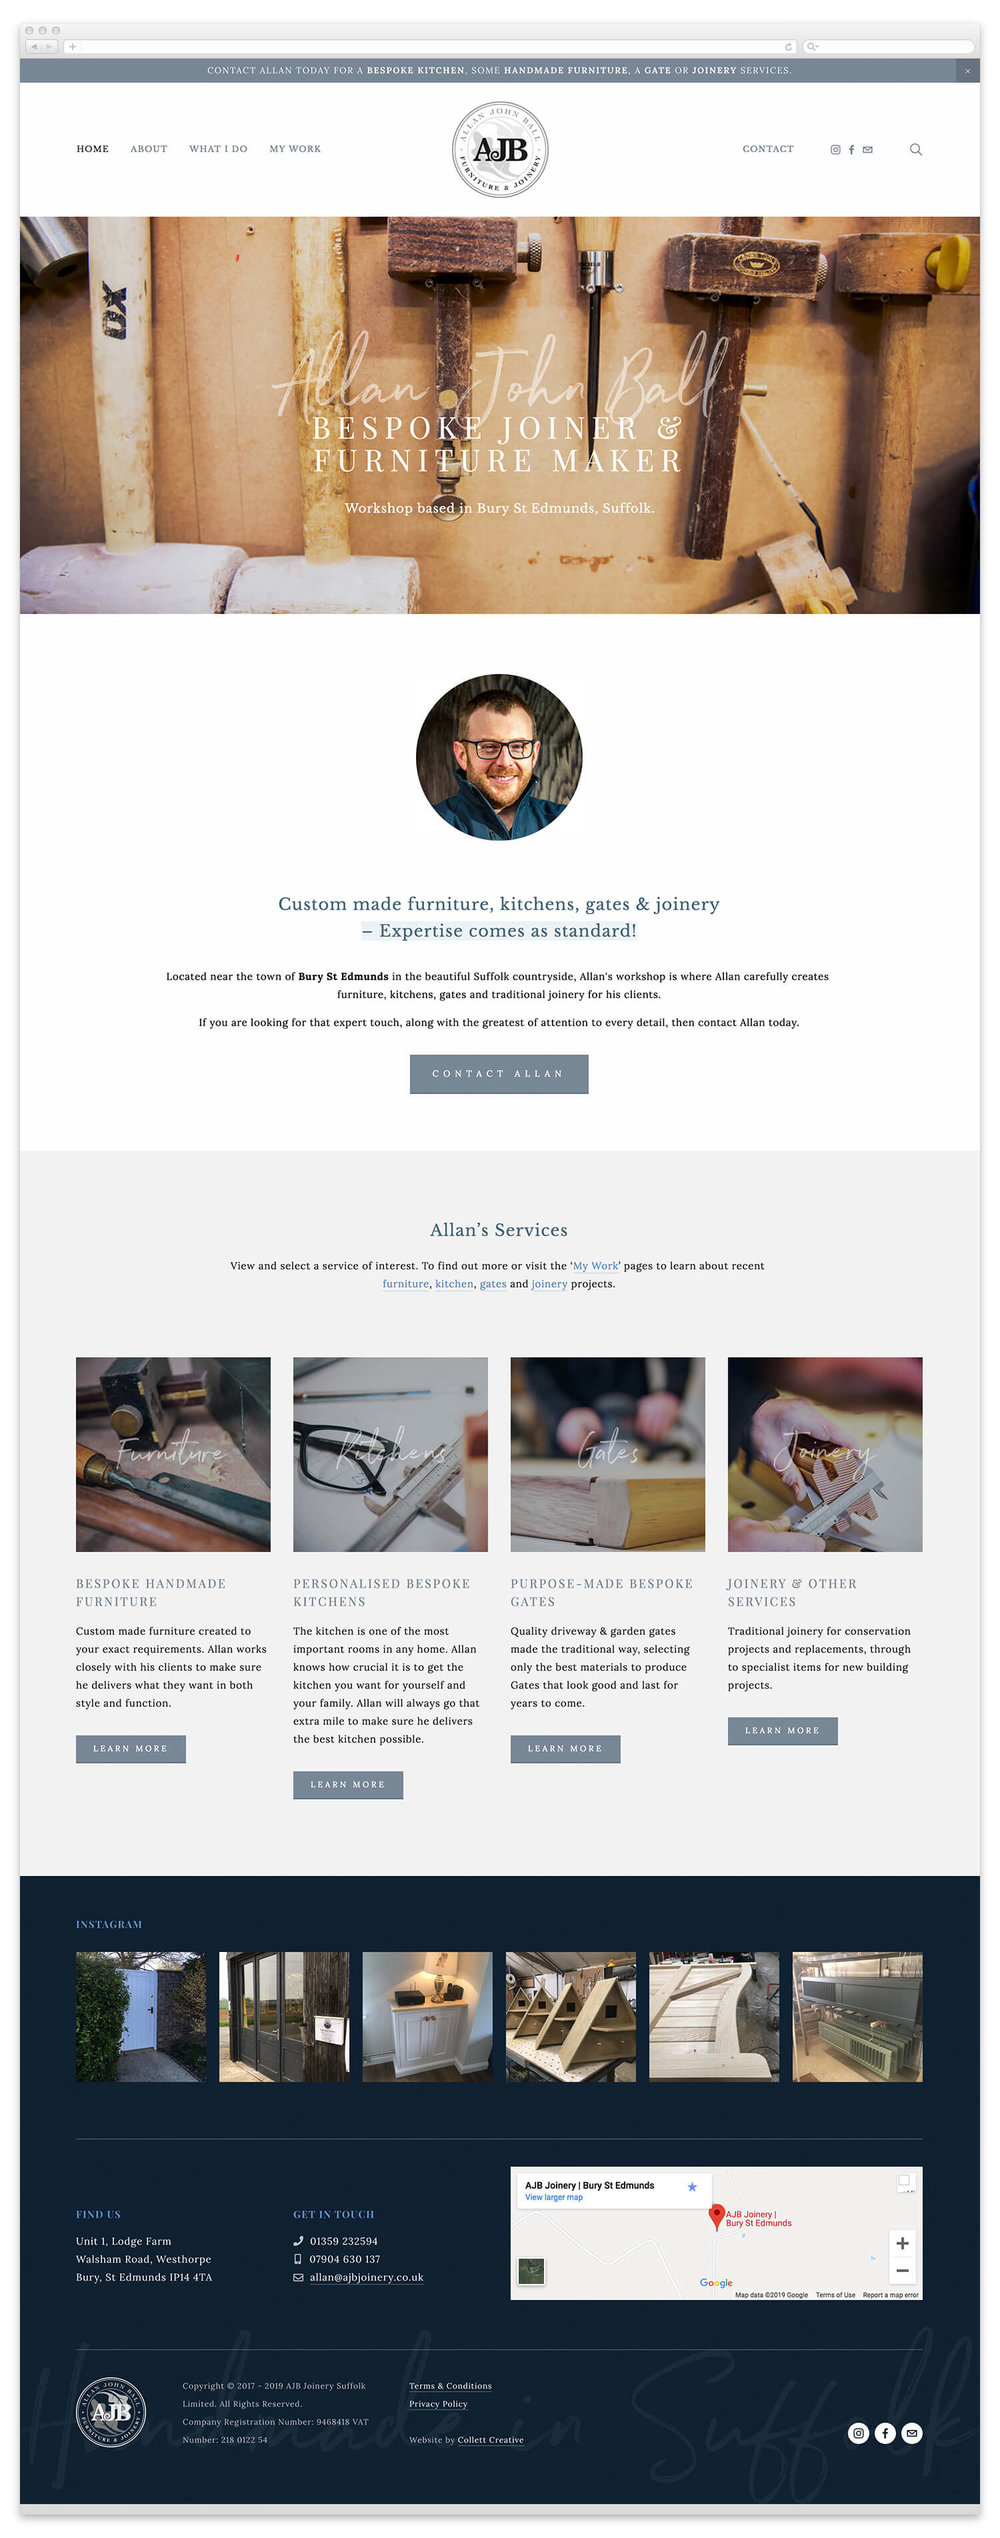 Image of the AJB Joinery website homepage at time of launch.